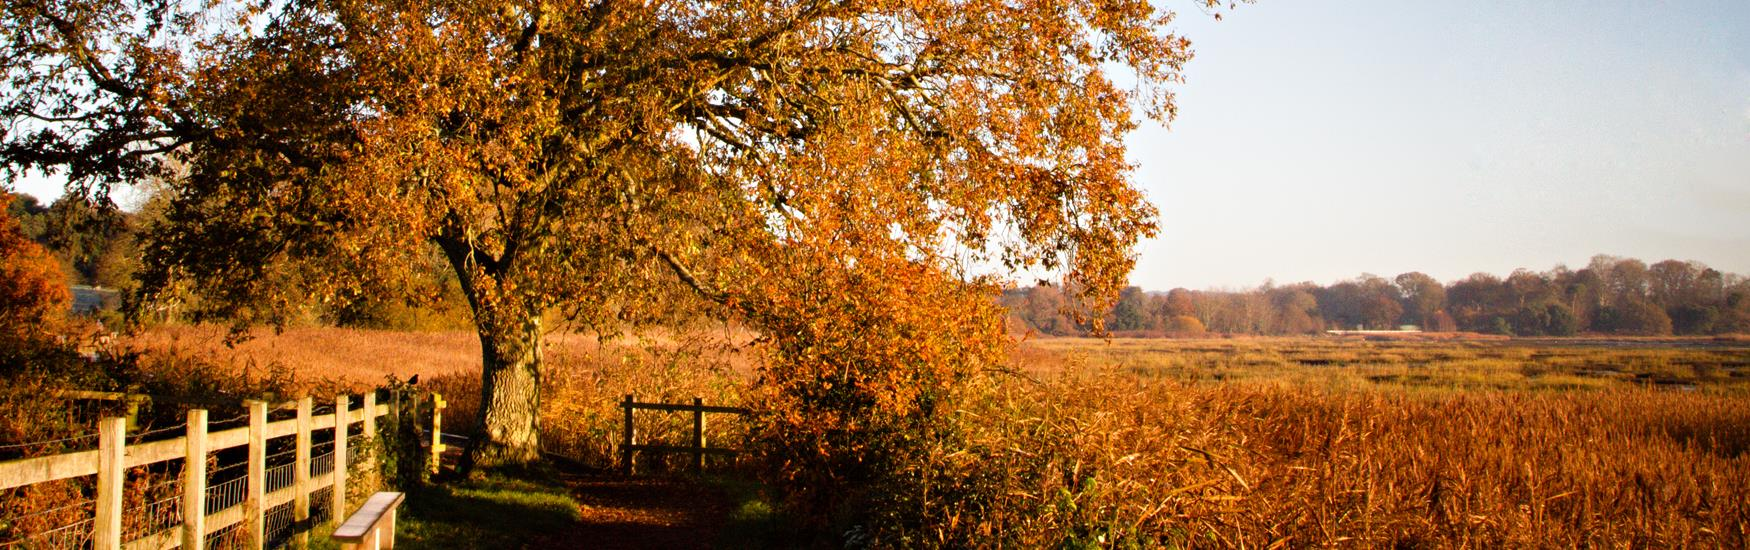 Autumn at Upton Country Park